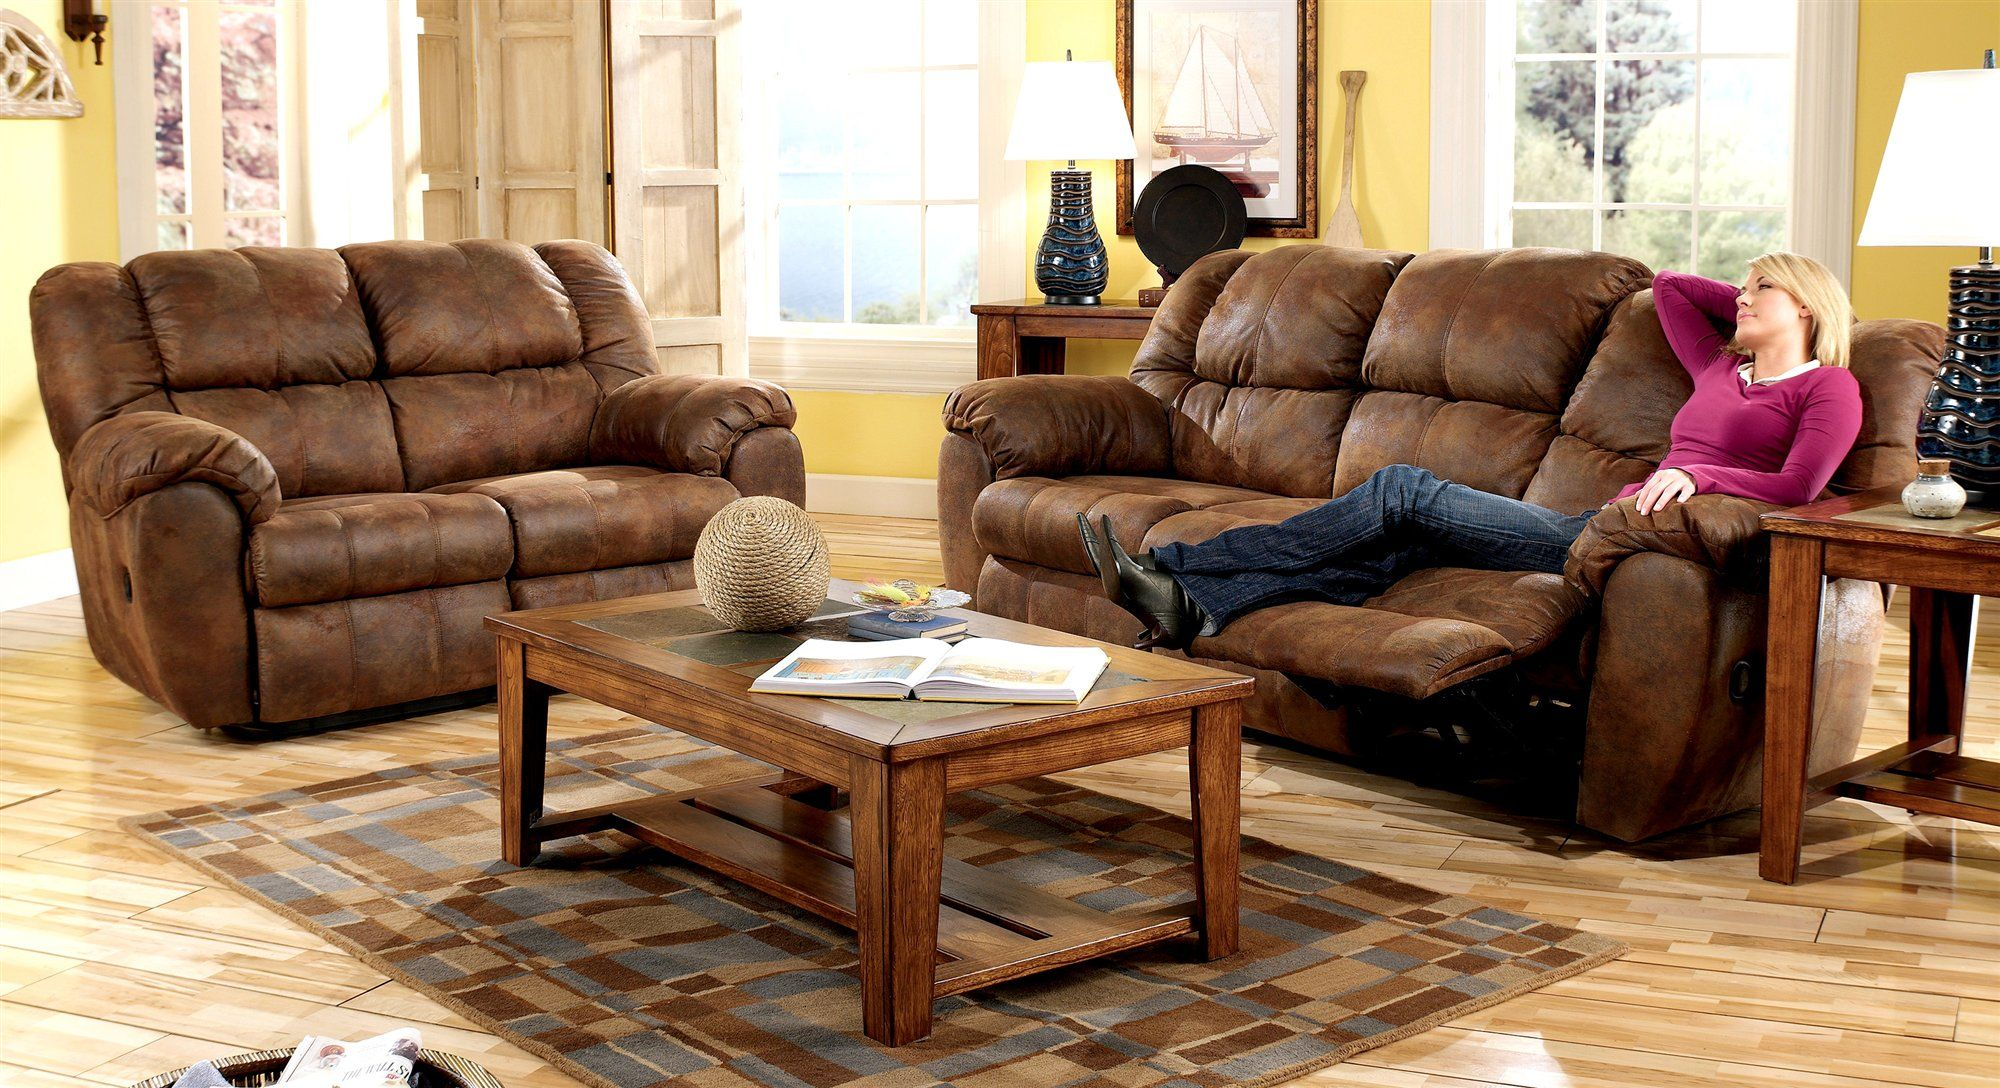 Ashley Furniture Leather Sofa Reclining Sectional Sleeper Couches 39s Navigator Faux